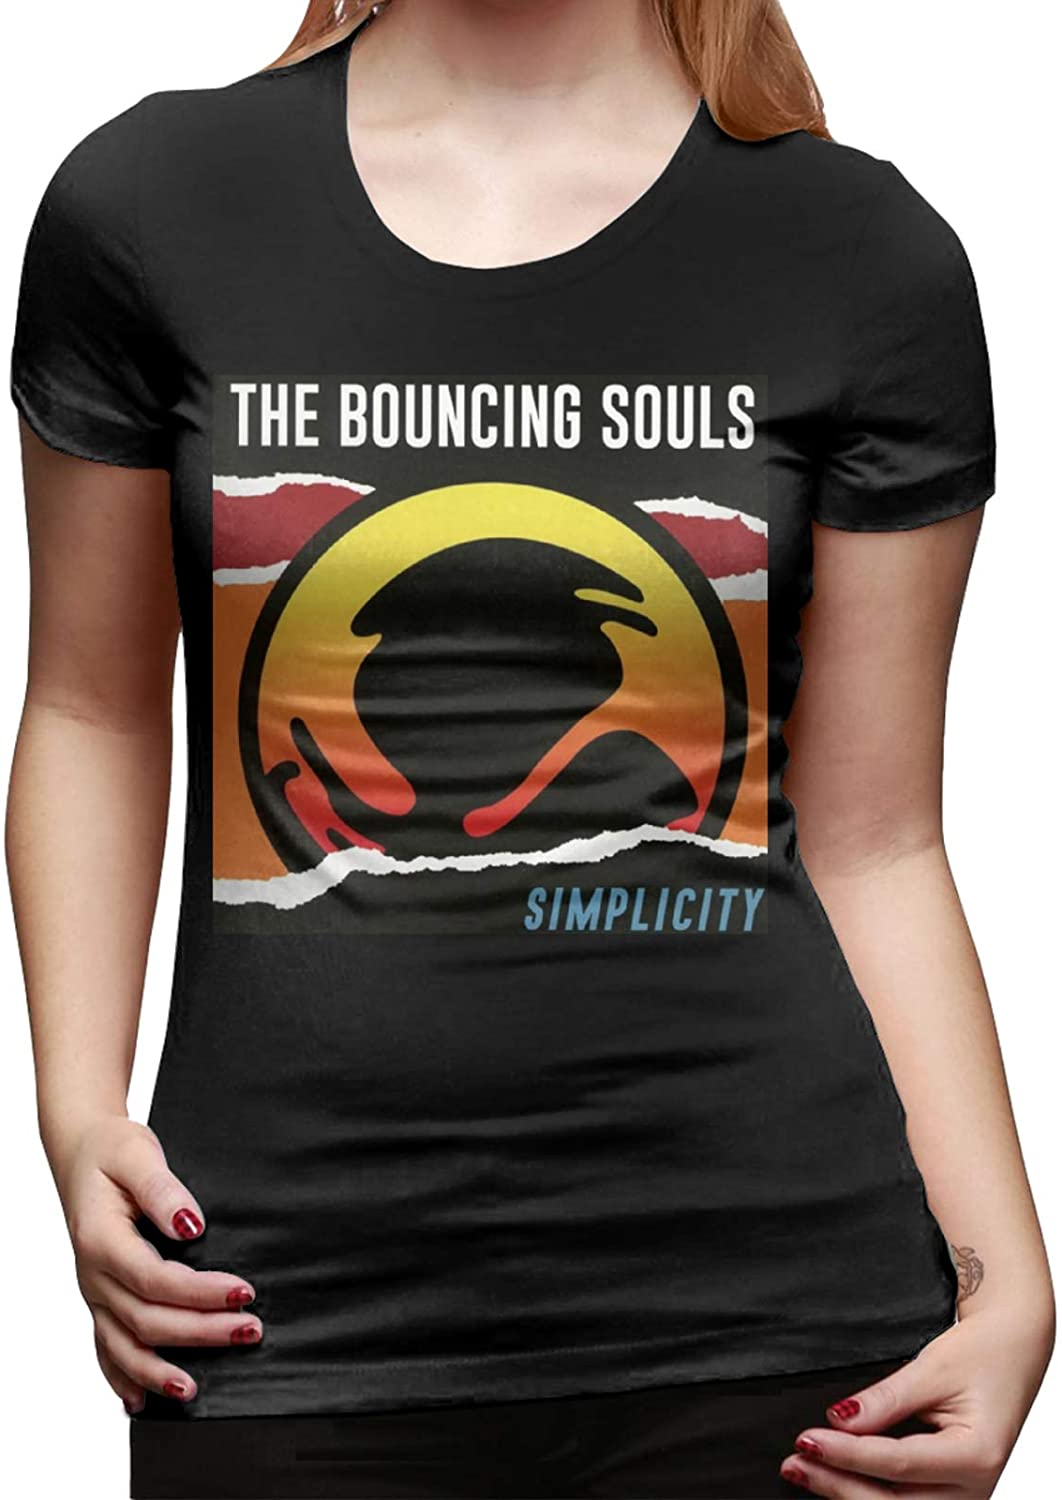 Women's Classic-Fit Short-Sleeve The Bouncing Souls T-Shirt Basic Short Sleeve T Shirts Crewneck Tee Shirt Tops Trendy Black